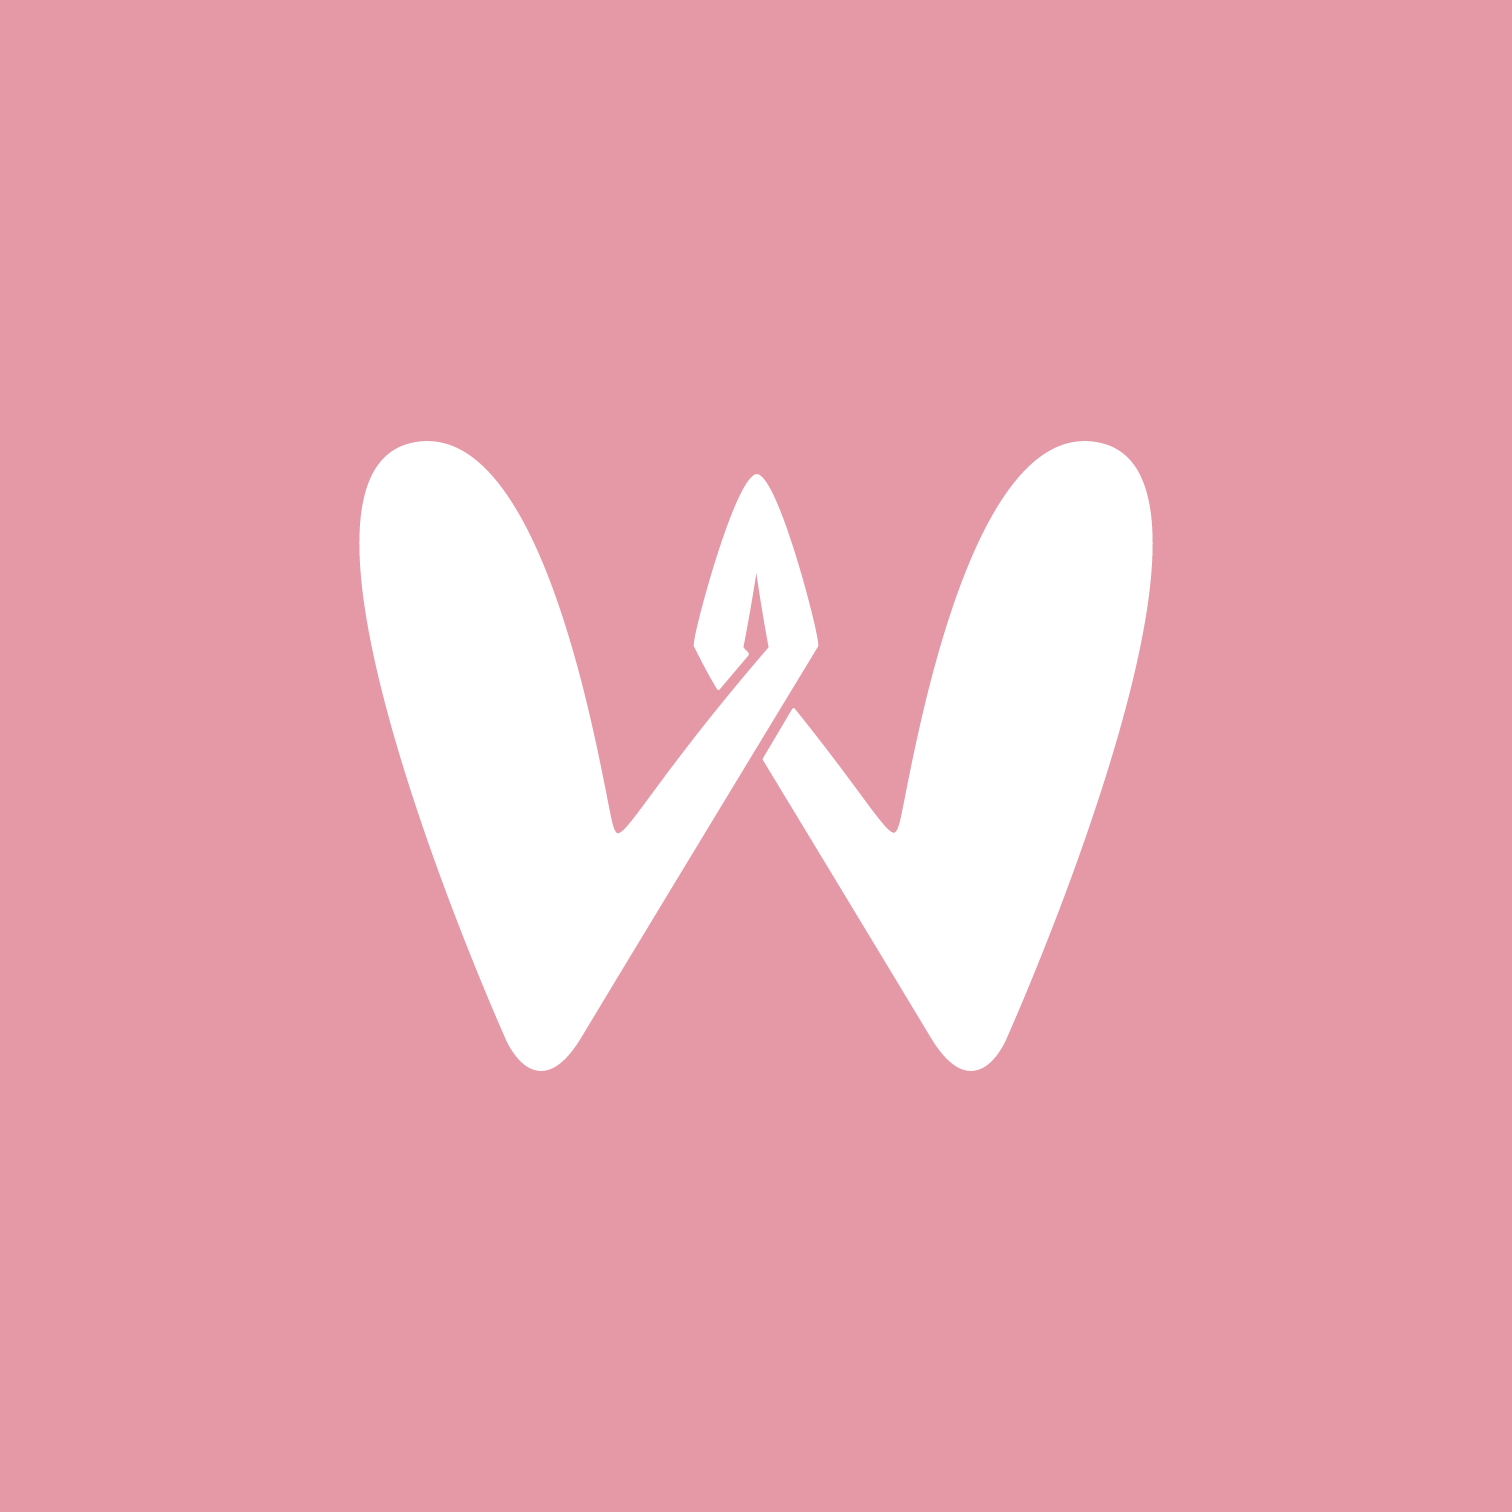 Pink@4x-8.png